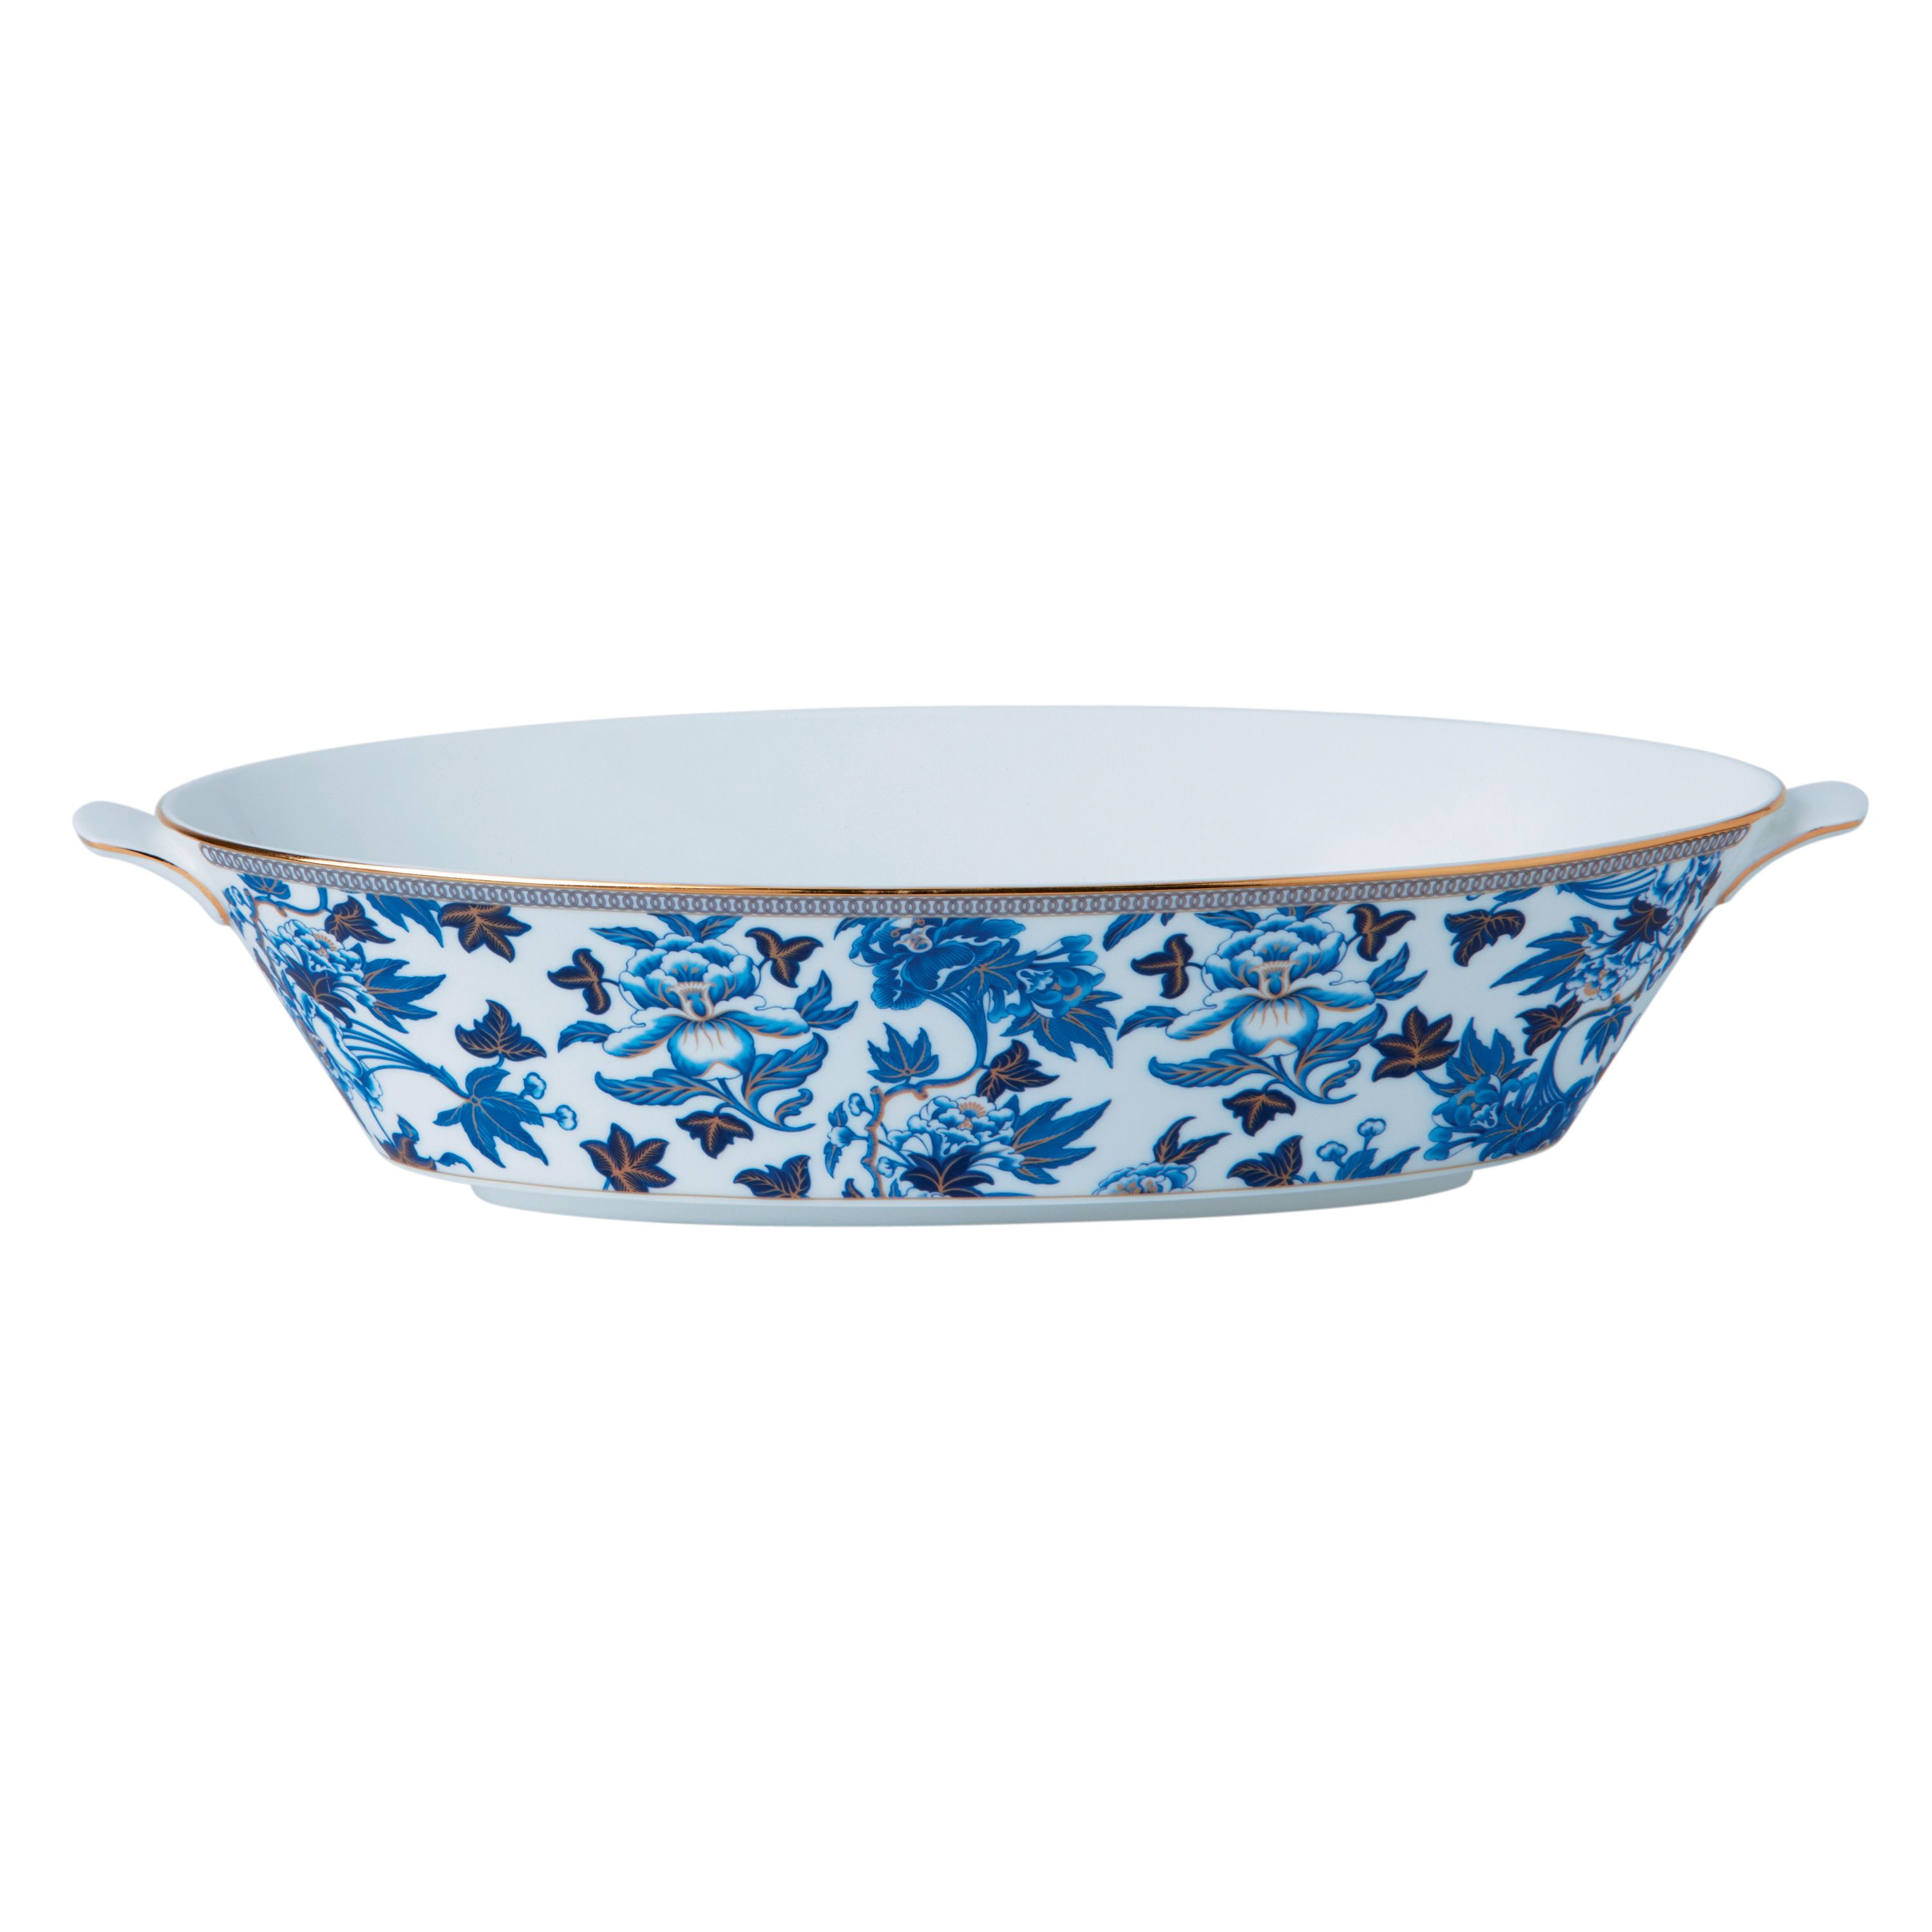 Wedgwood Hibiscus oval serving bowl 1.3ltr